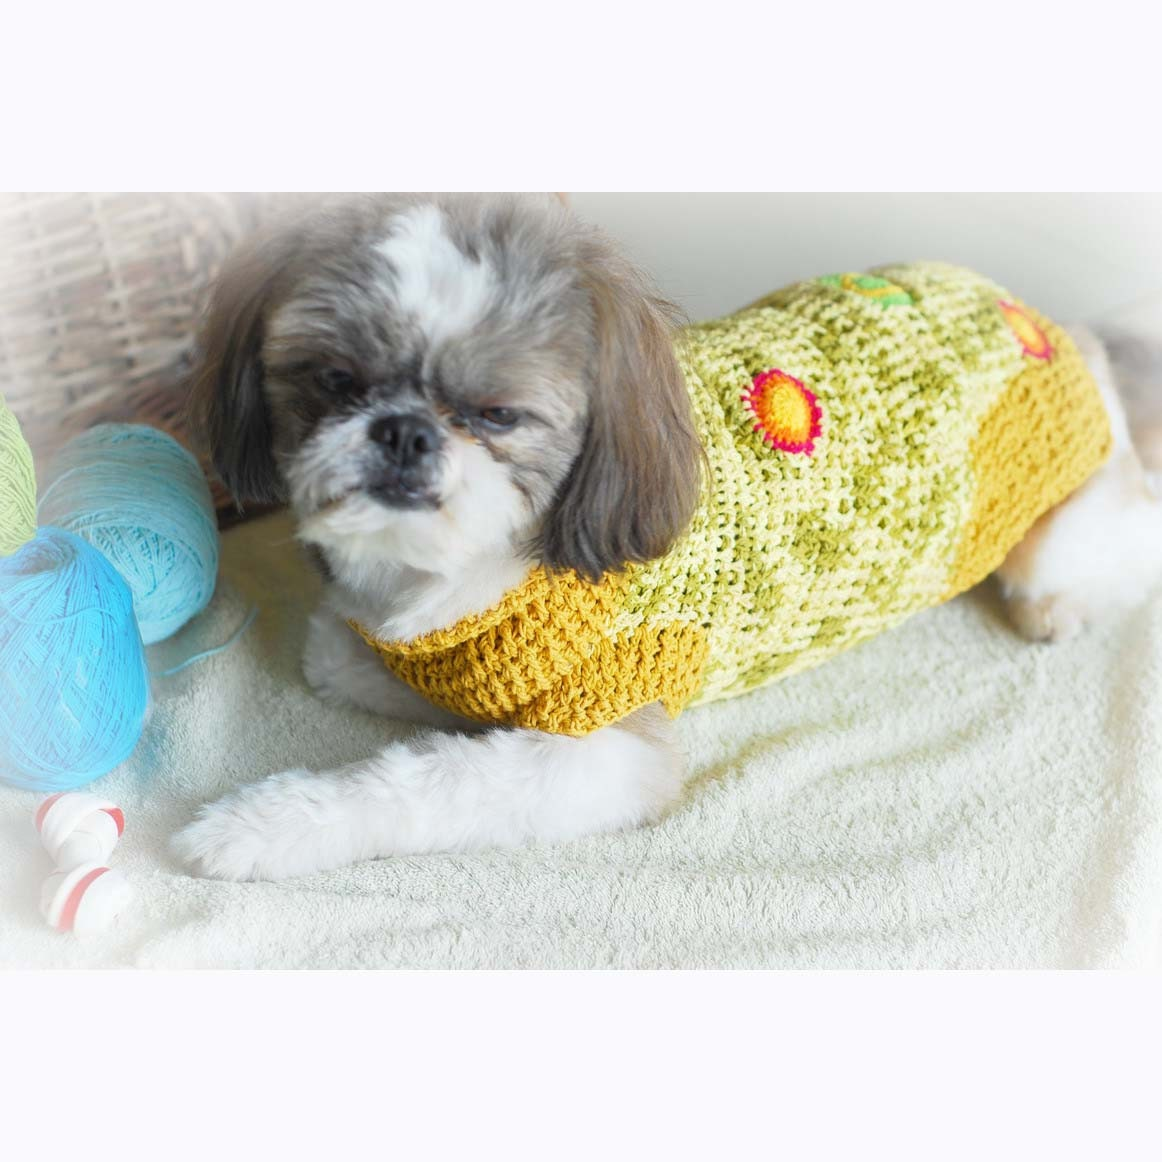 Knit Dog Sweater Lime Mint Green Soft Cotton Teacup Chihuahua